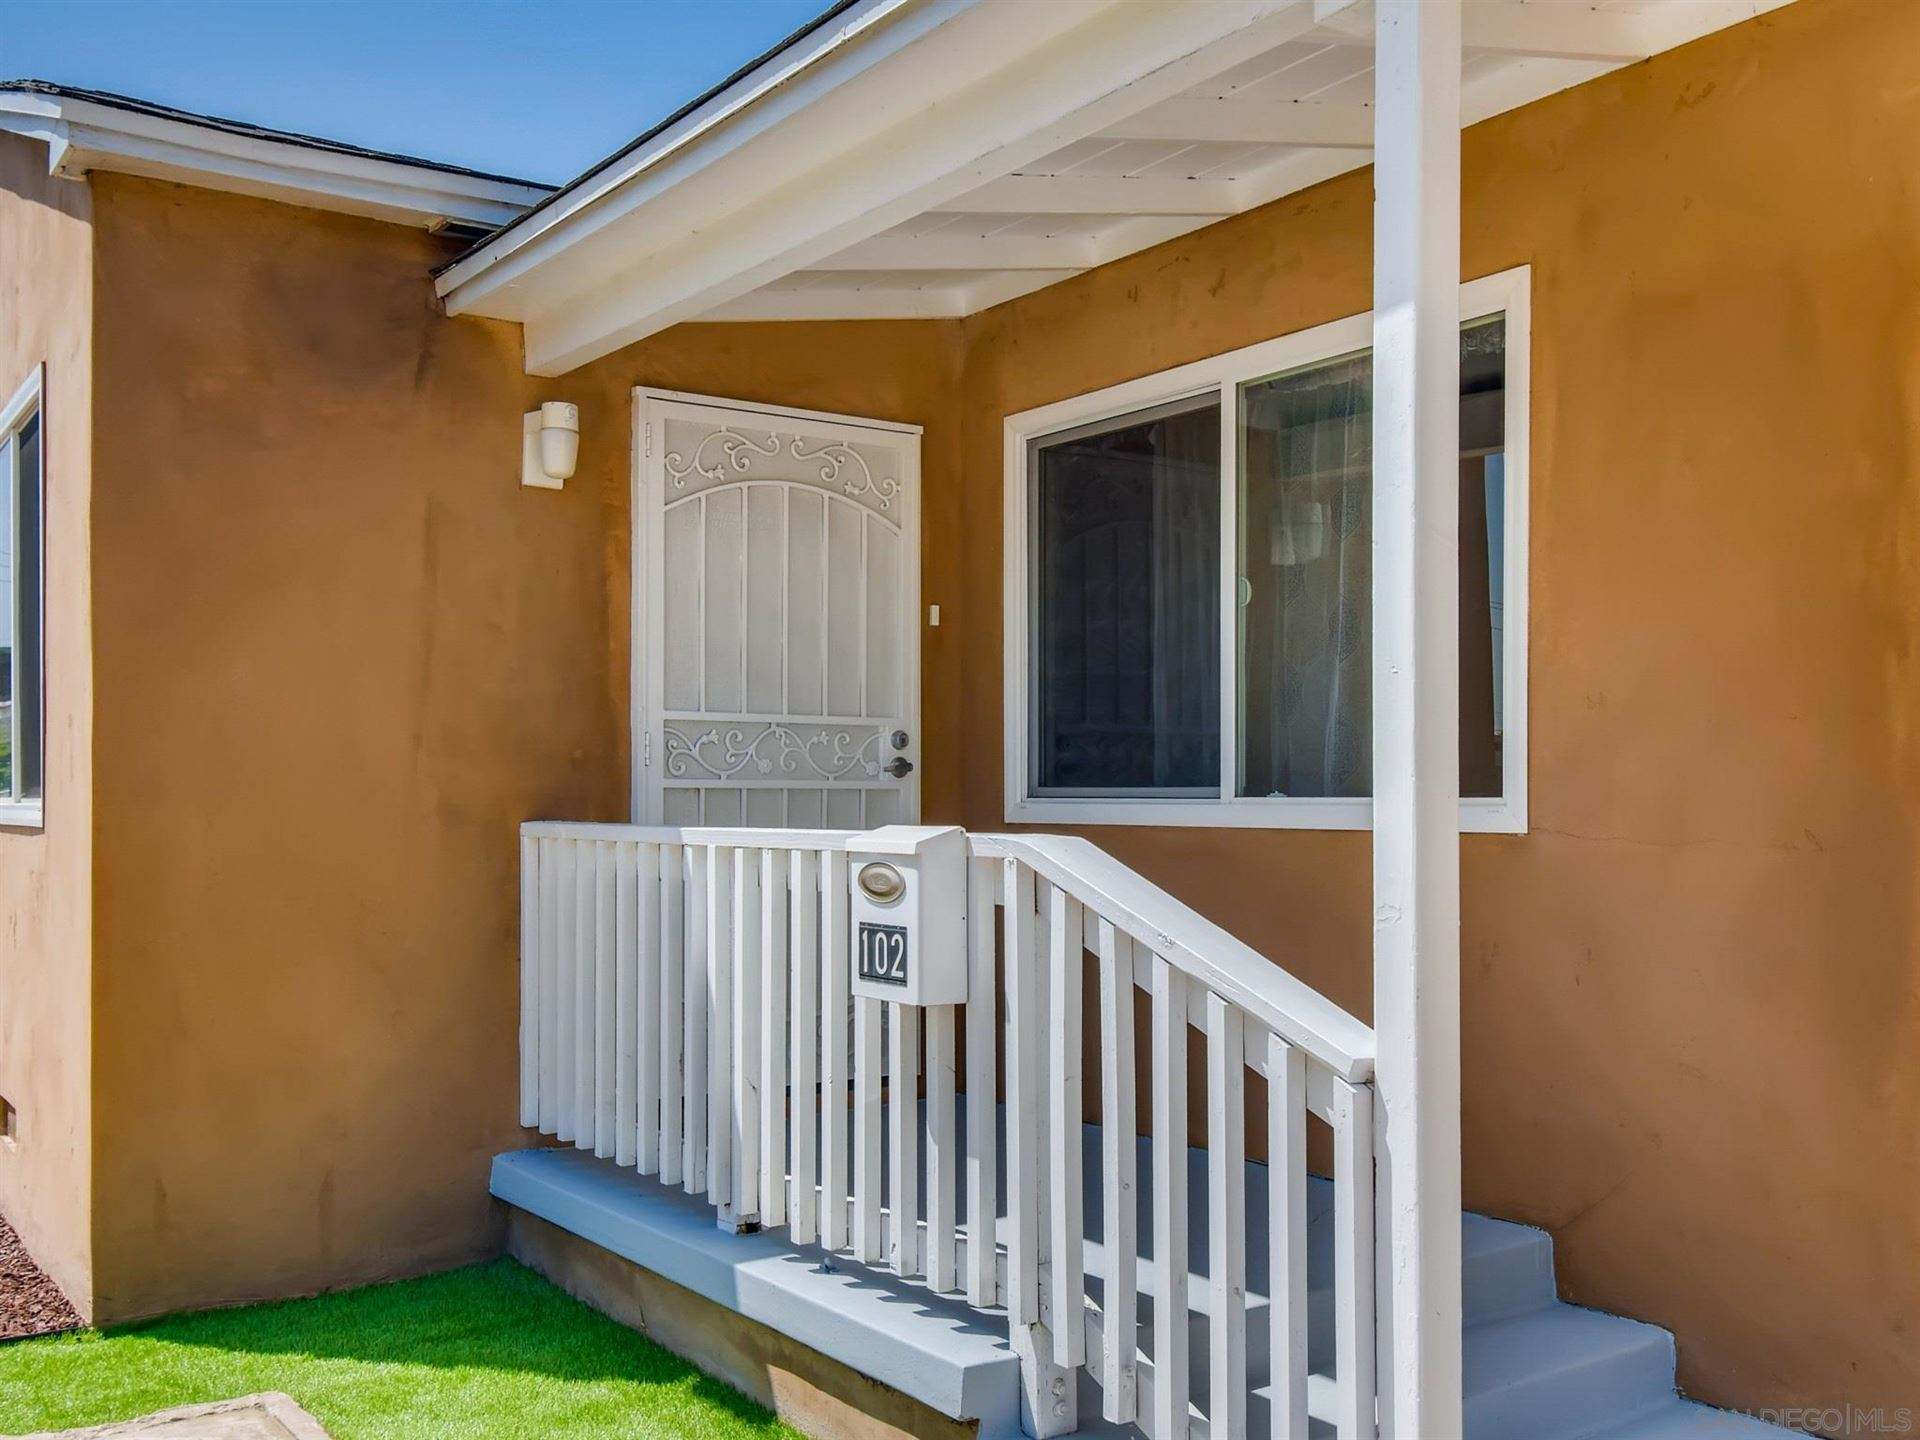 Photo of 102 N T Ave., National City, CA 91950 (MLS # 210009589)